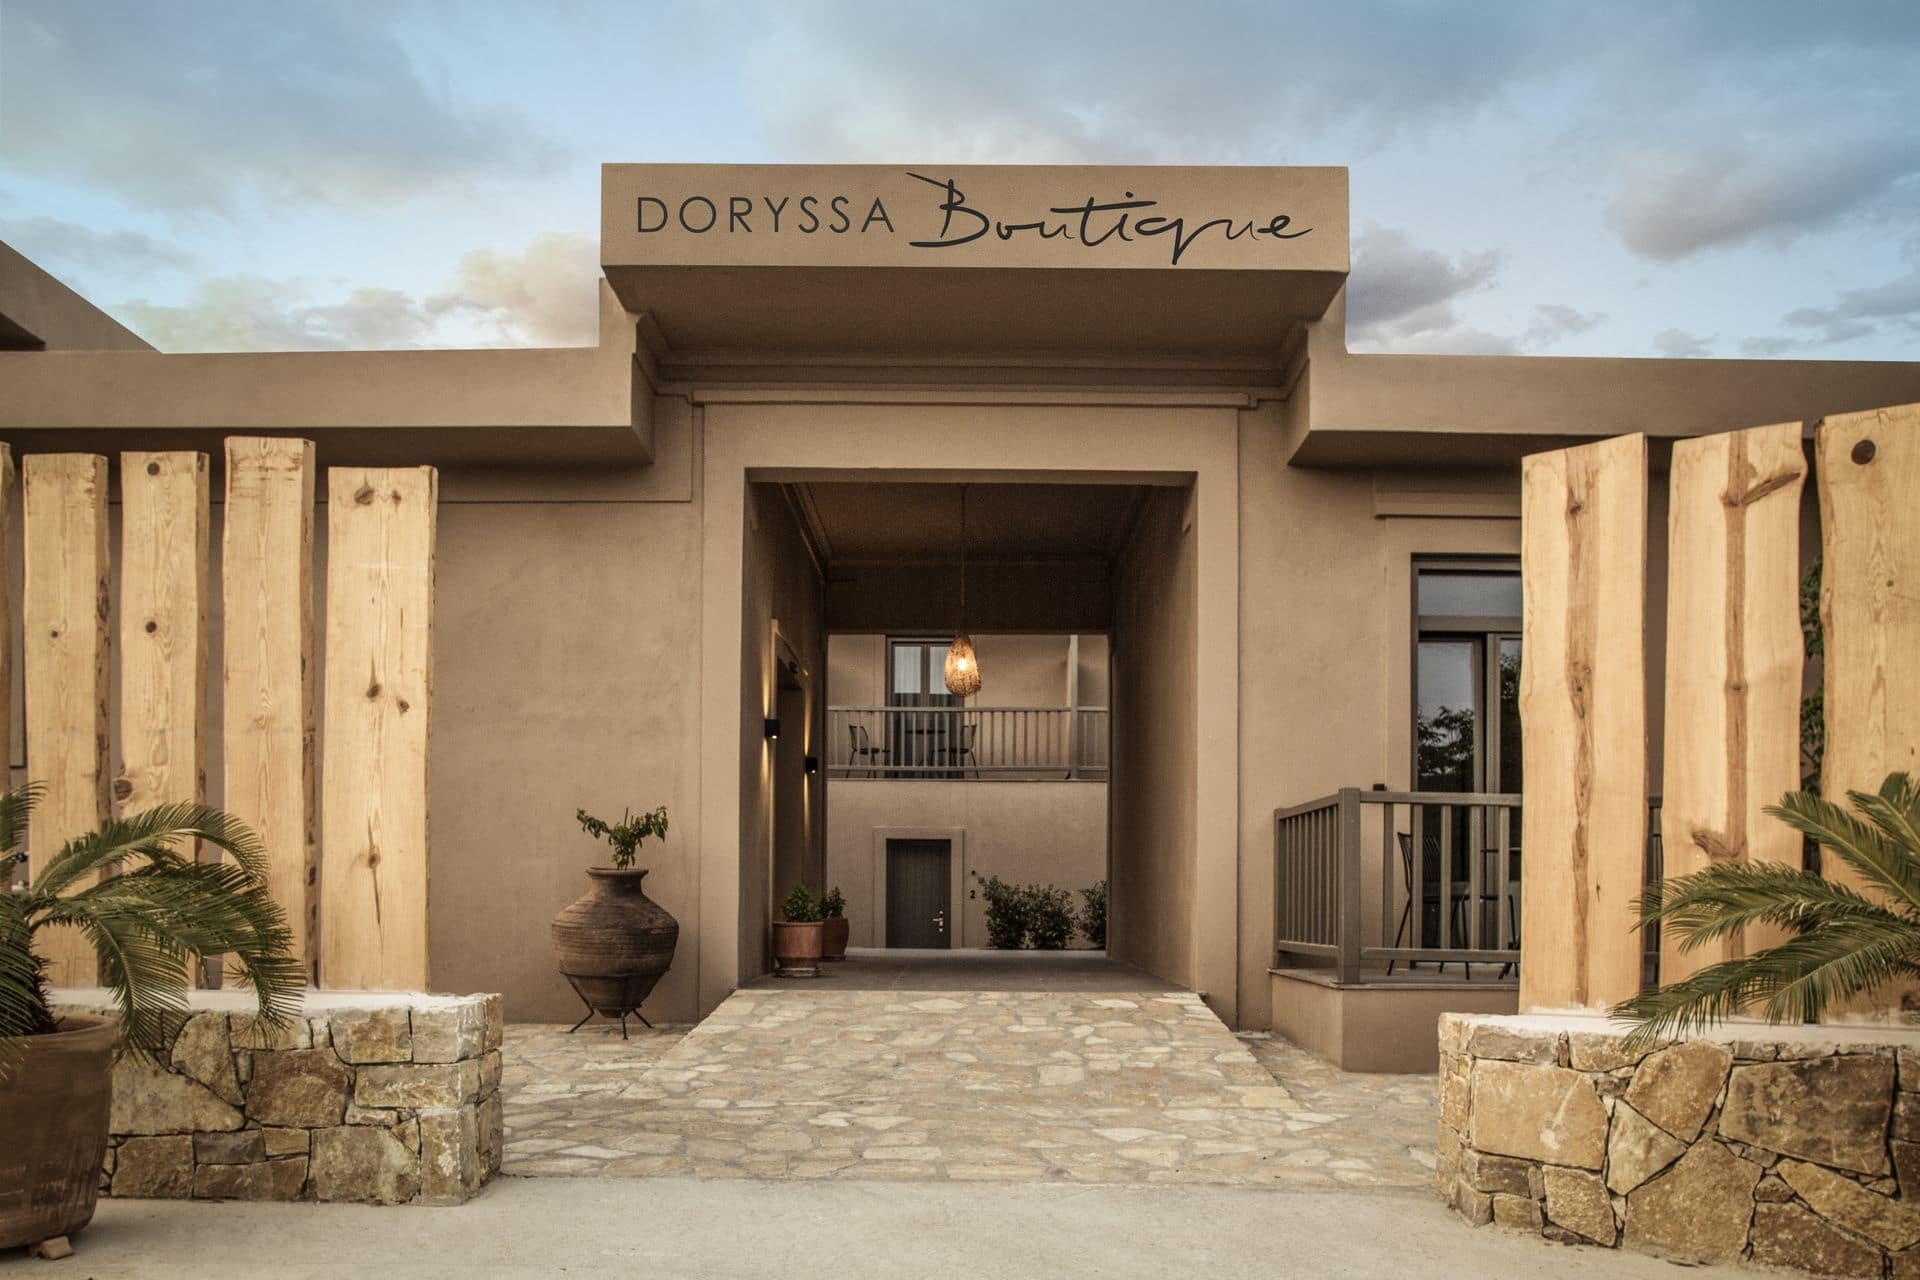 Main entrance of Doryssa Boutique, an adults only hotel in Samos